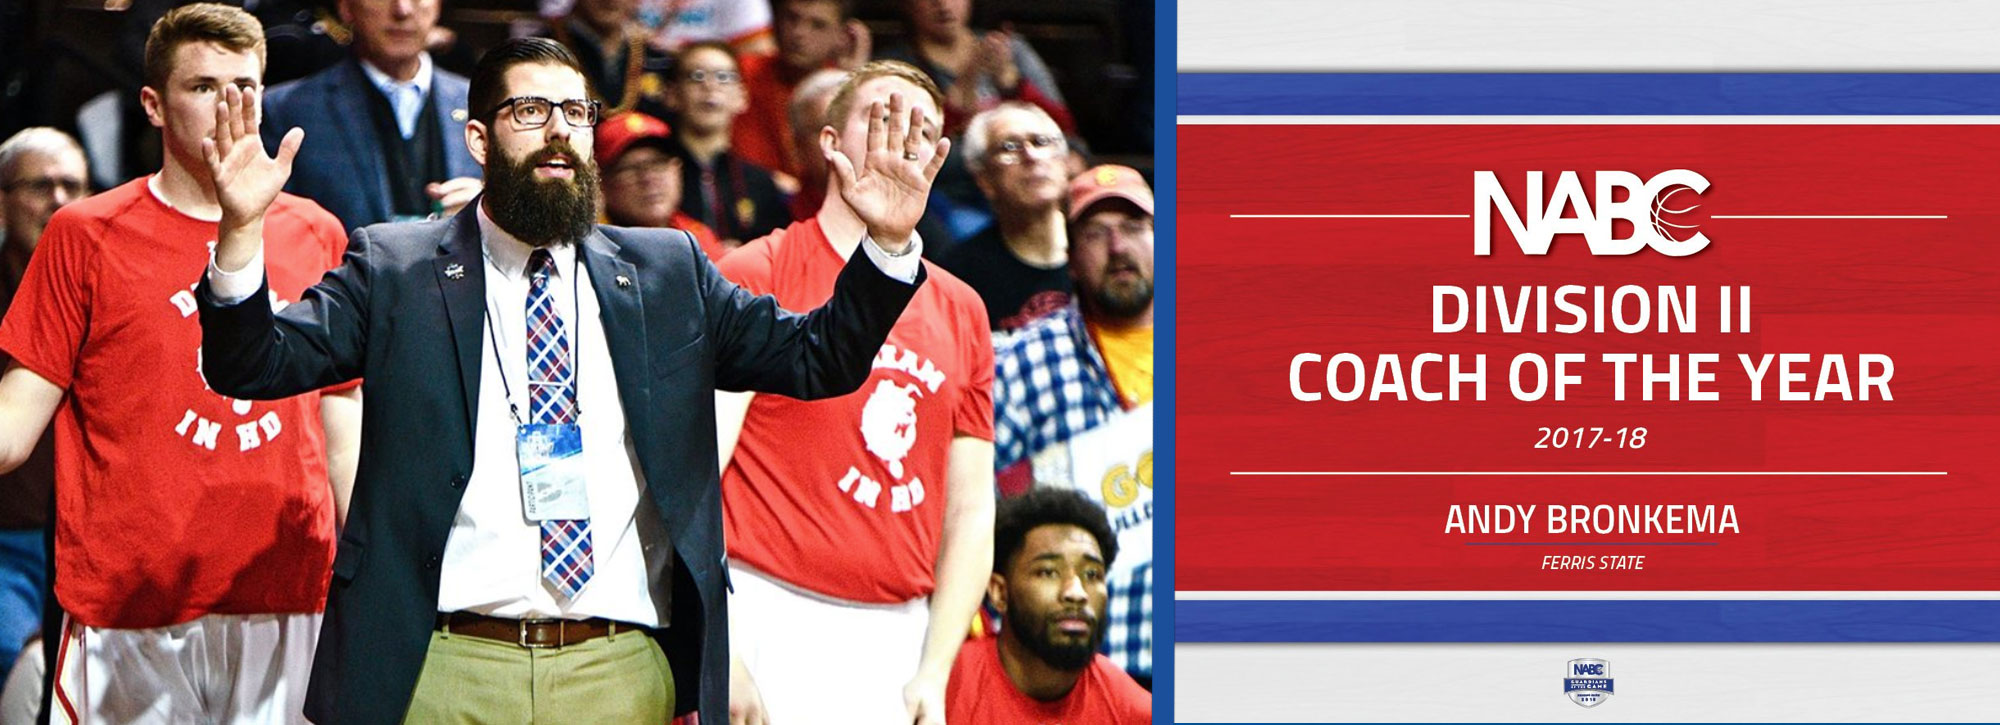 Ferris State's Andy Bronkema Named 2018 NABC Division II Coach of the Year